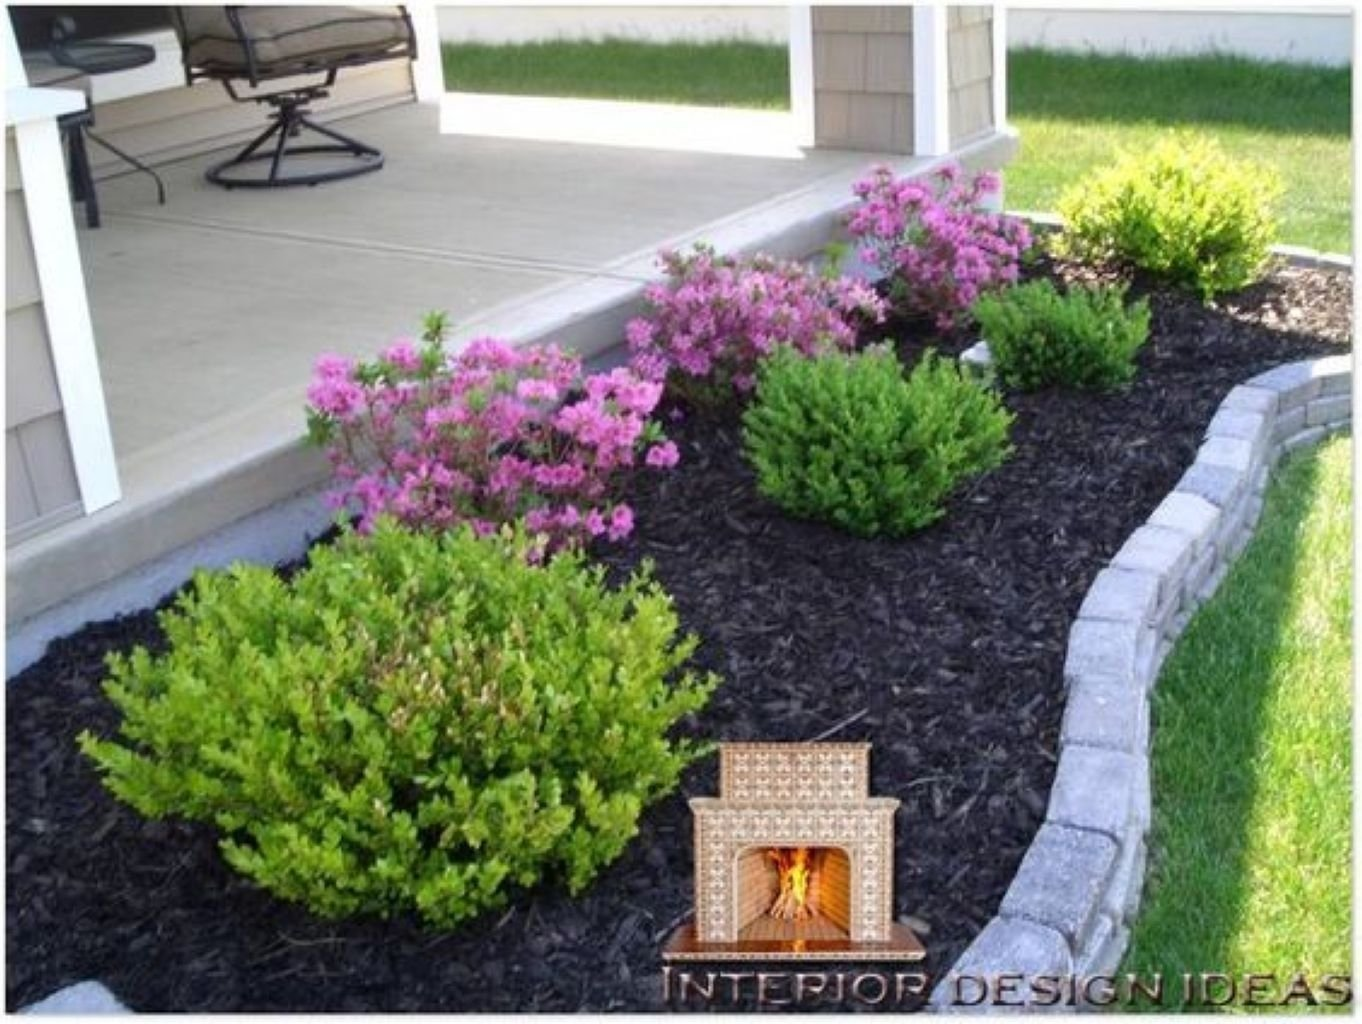 10 Unique Landscaping Ideas For Front Yard 47 amazing front yard walkway landscaping ideas front yard walkway 2021